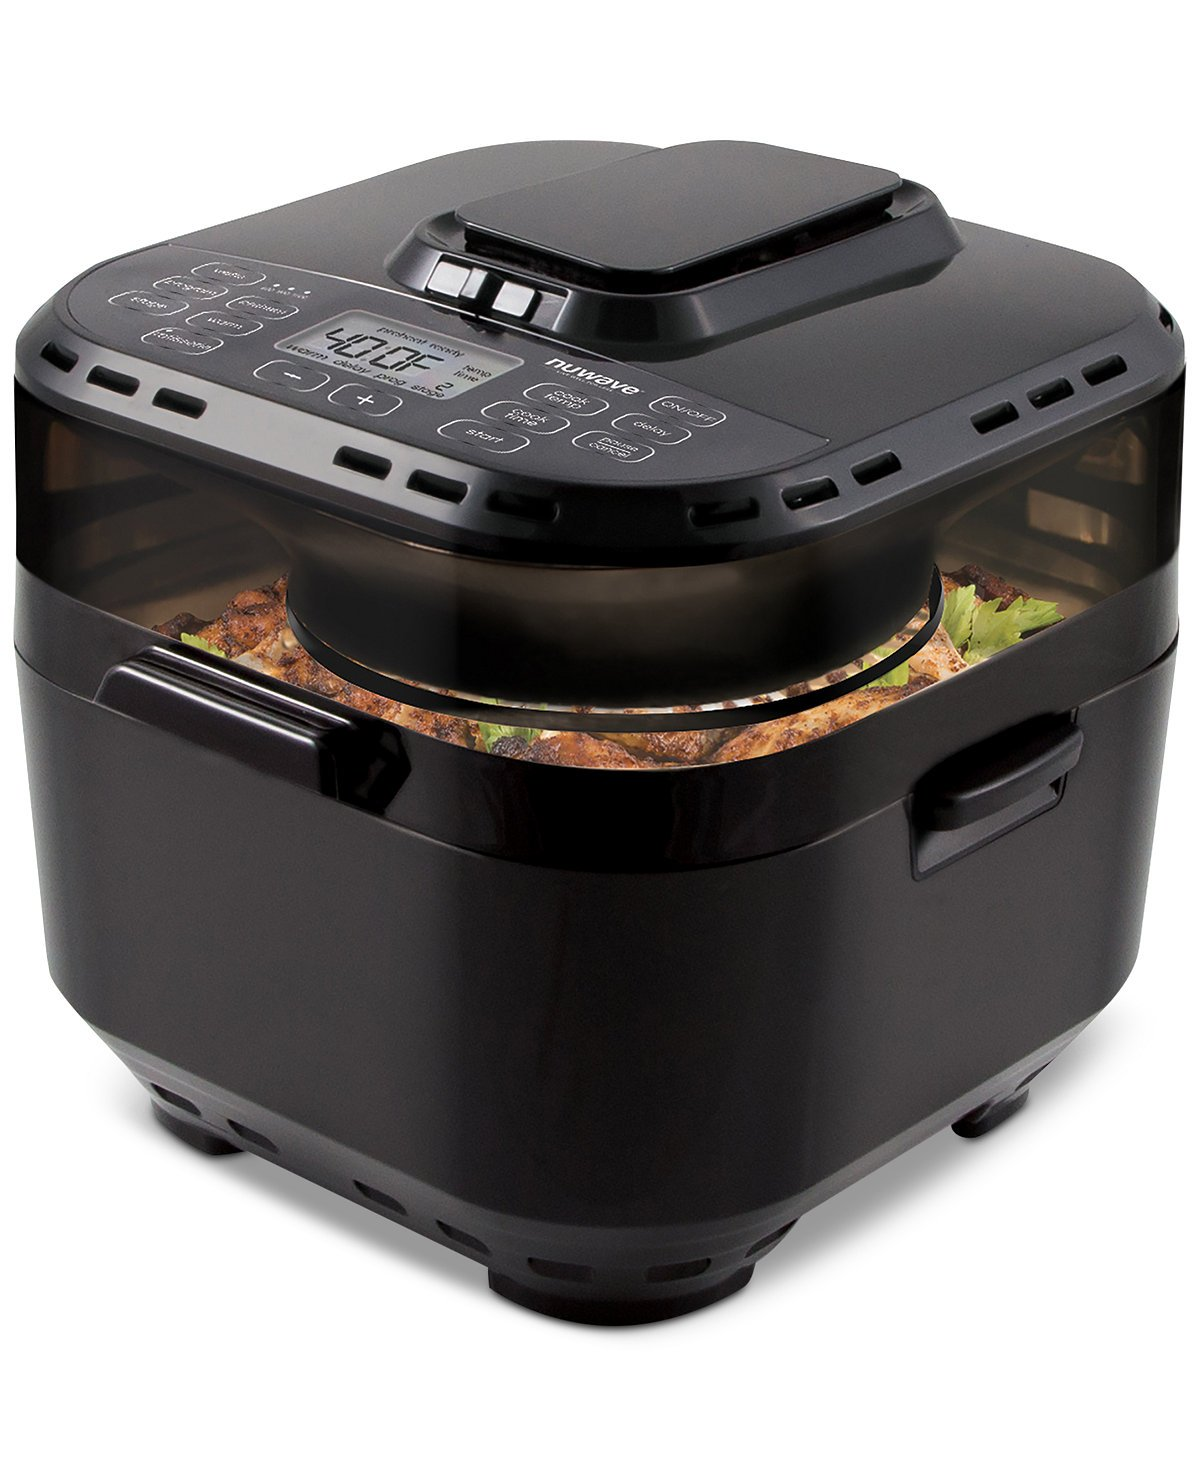 NuWave 10-qt. Digital Air Fryer (37101)